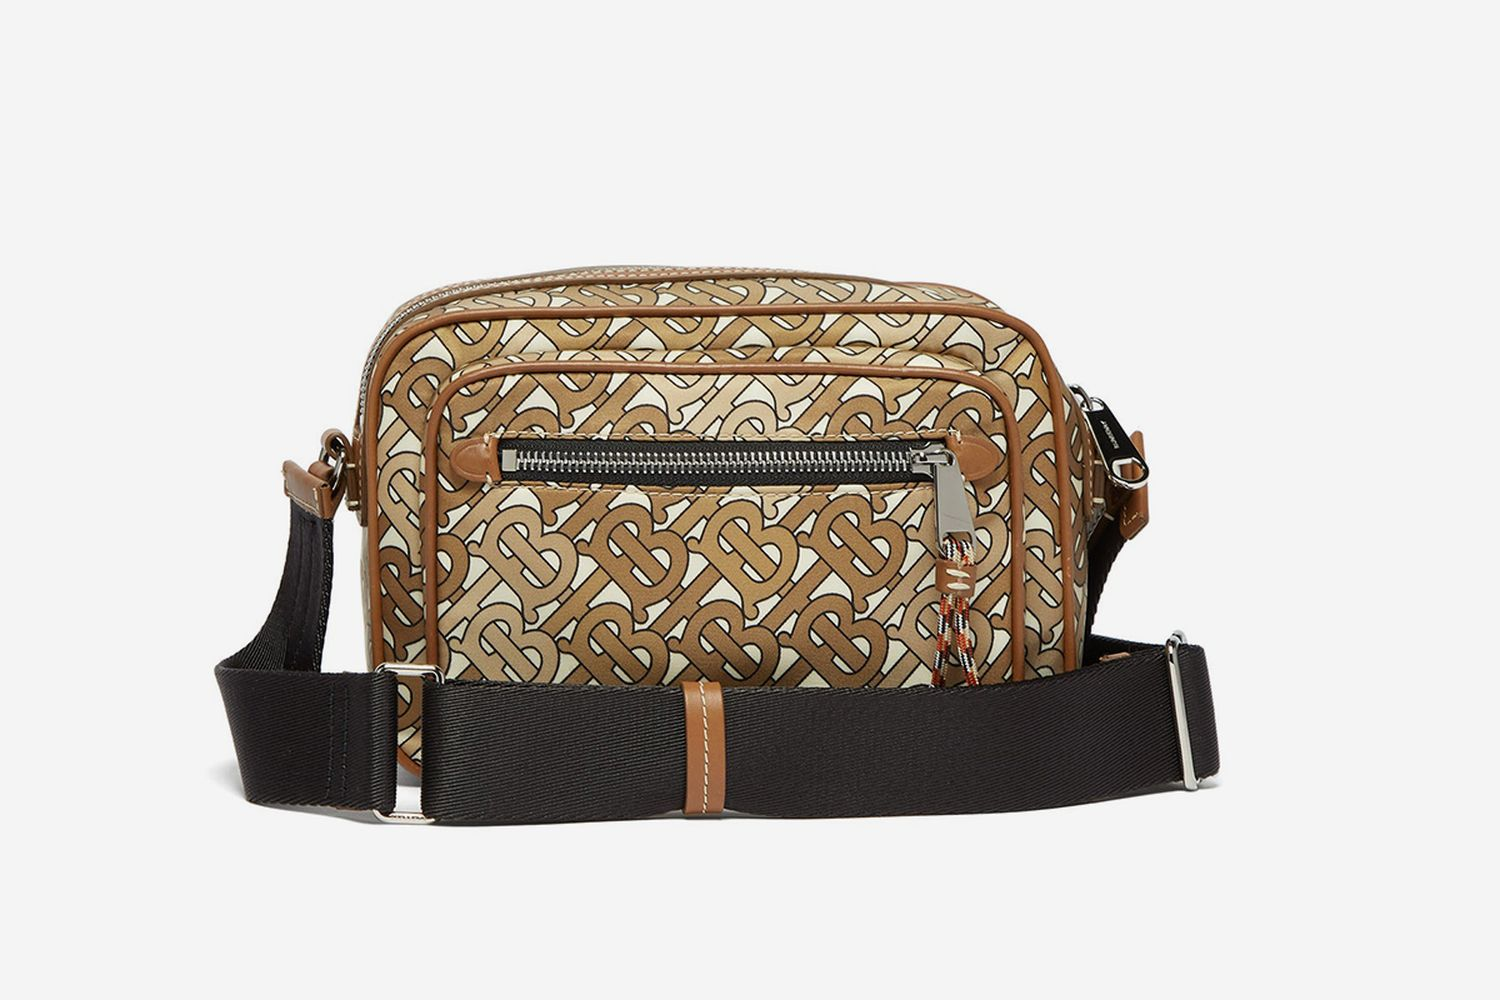 Monogram-Print Cross-Body Bag